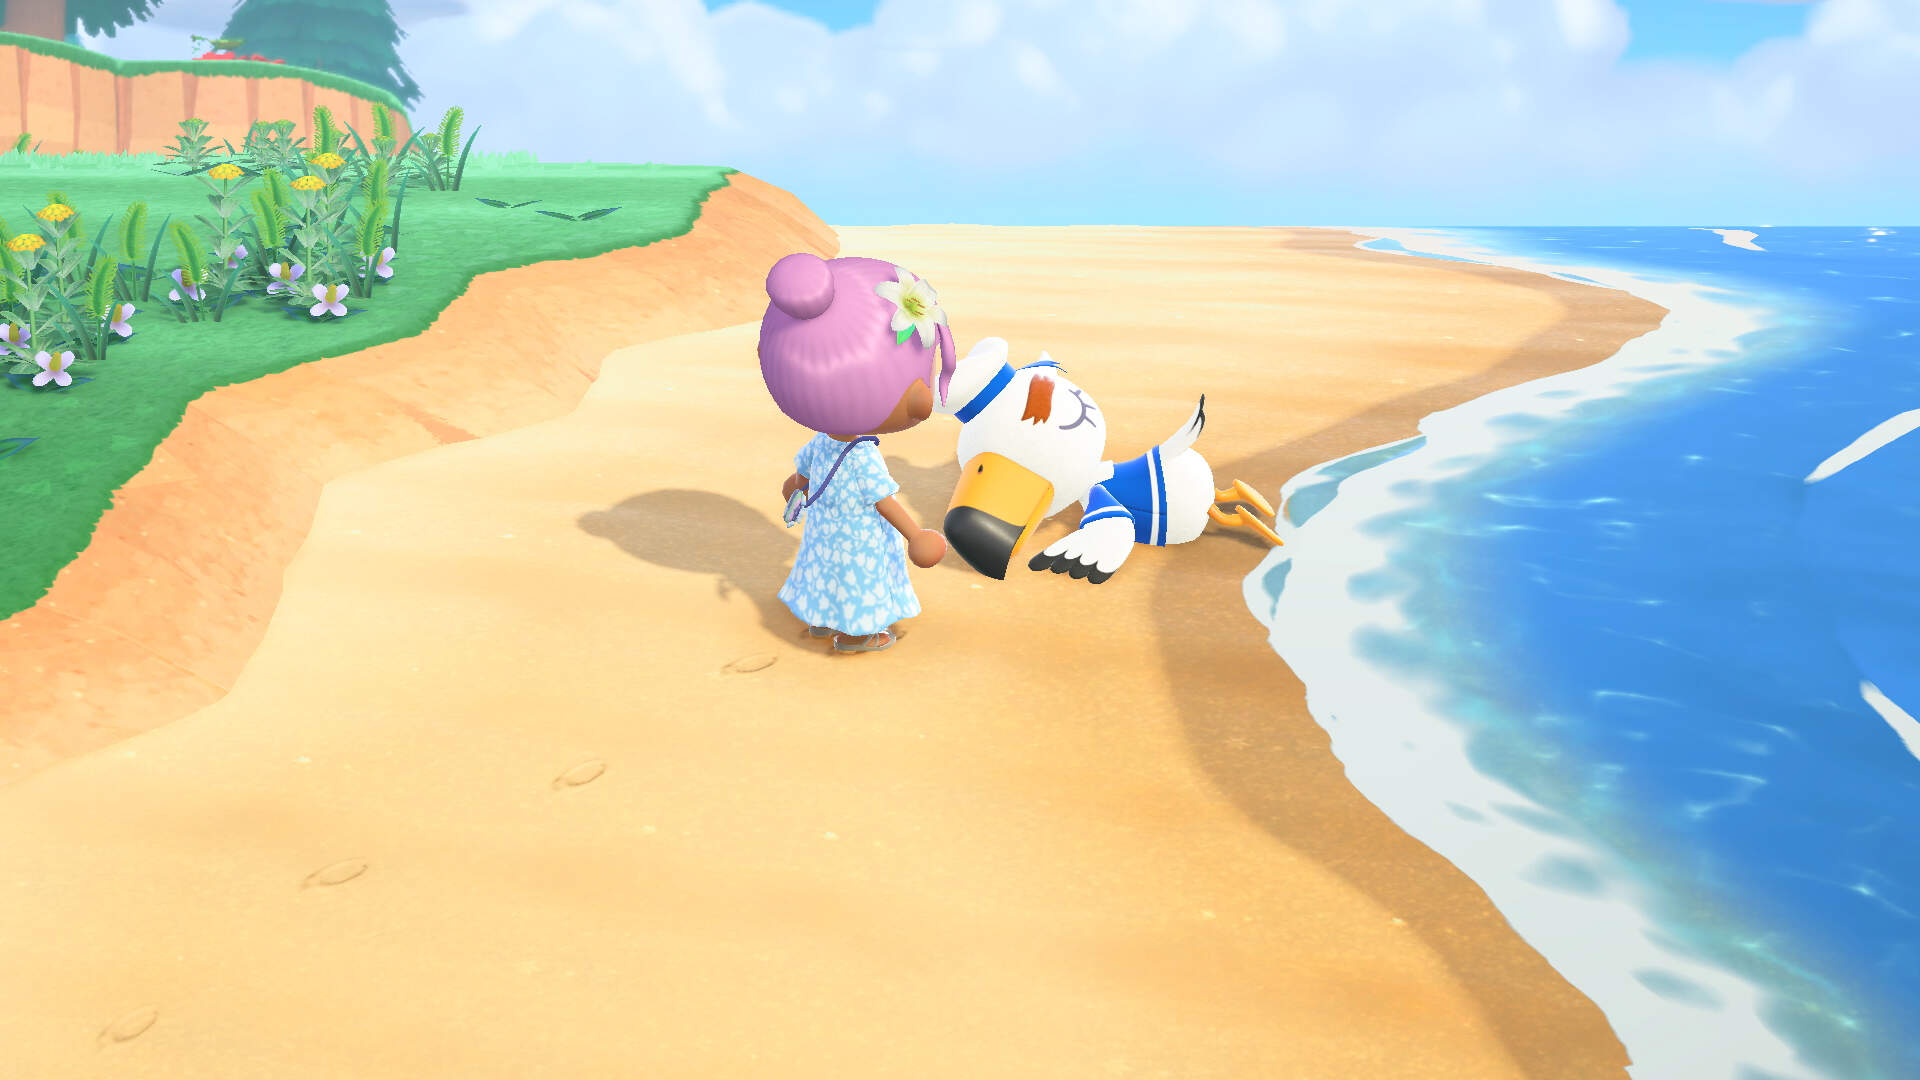 Animal Crossing New Horizons: Can You Change Your Name?